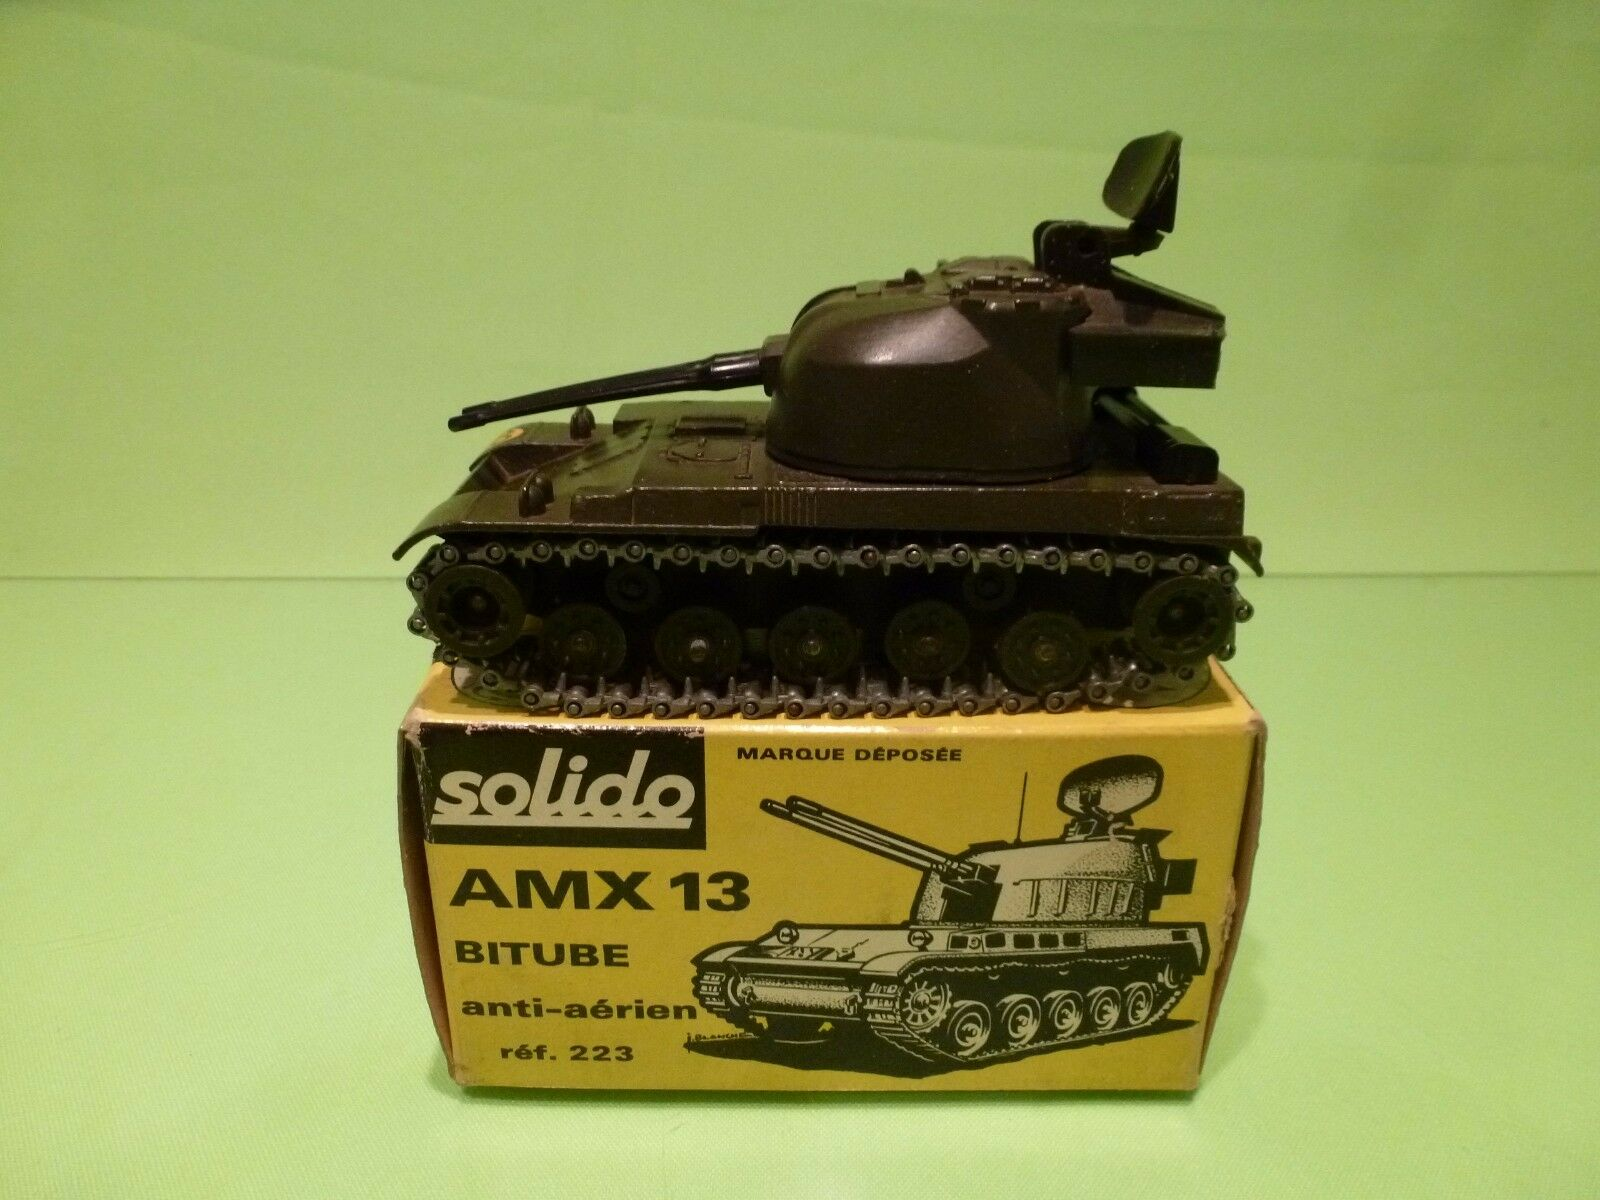 popular SOLIDO 223 MILITARY AMX 13 BITUBE BITUBE BITUBE ANTI AERIEN TANK - ARMY verde - GOOD IN BOX  connotación de lujo discreta